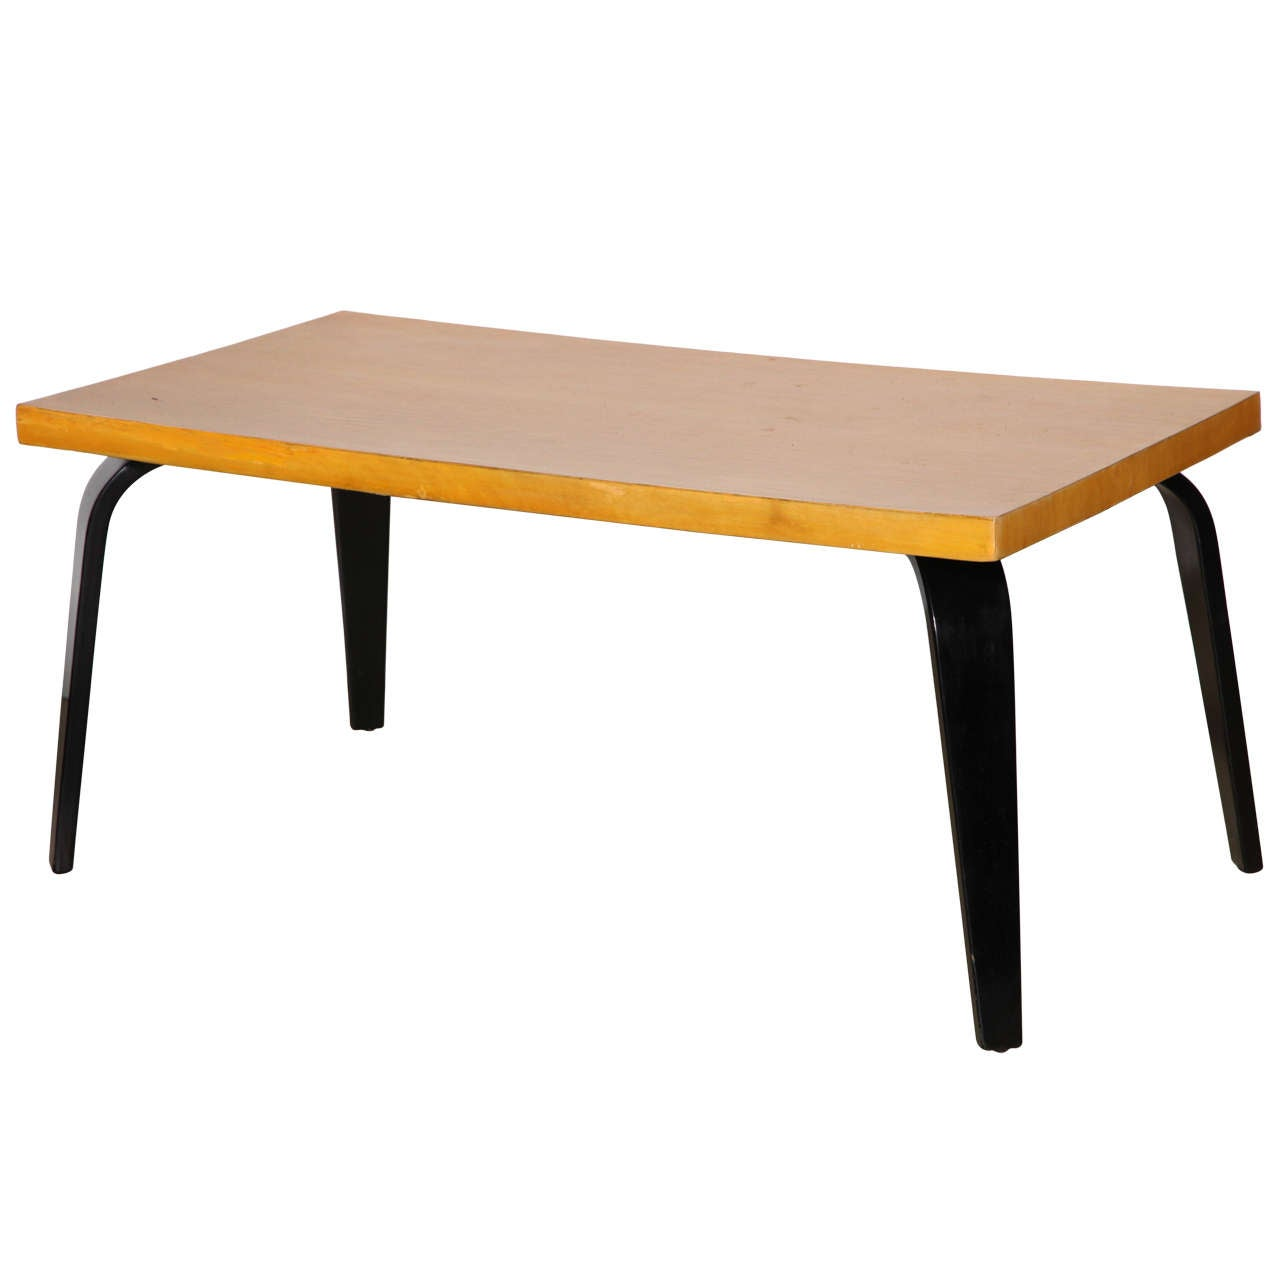 Thonet coffee table at 1stdibs for Table thonet